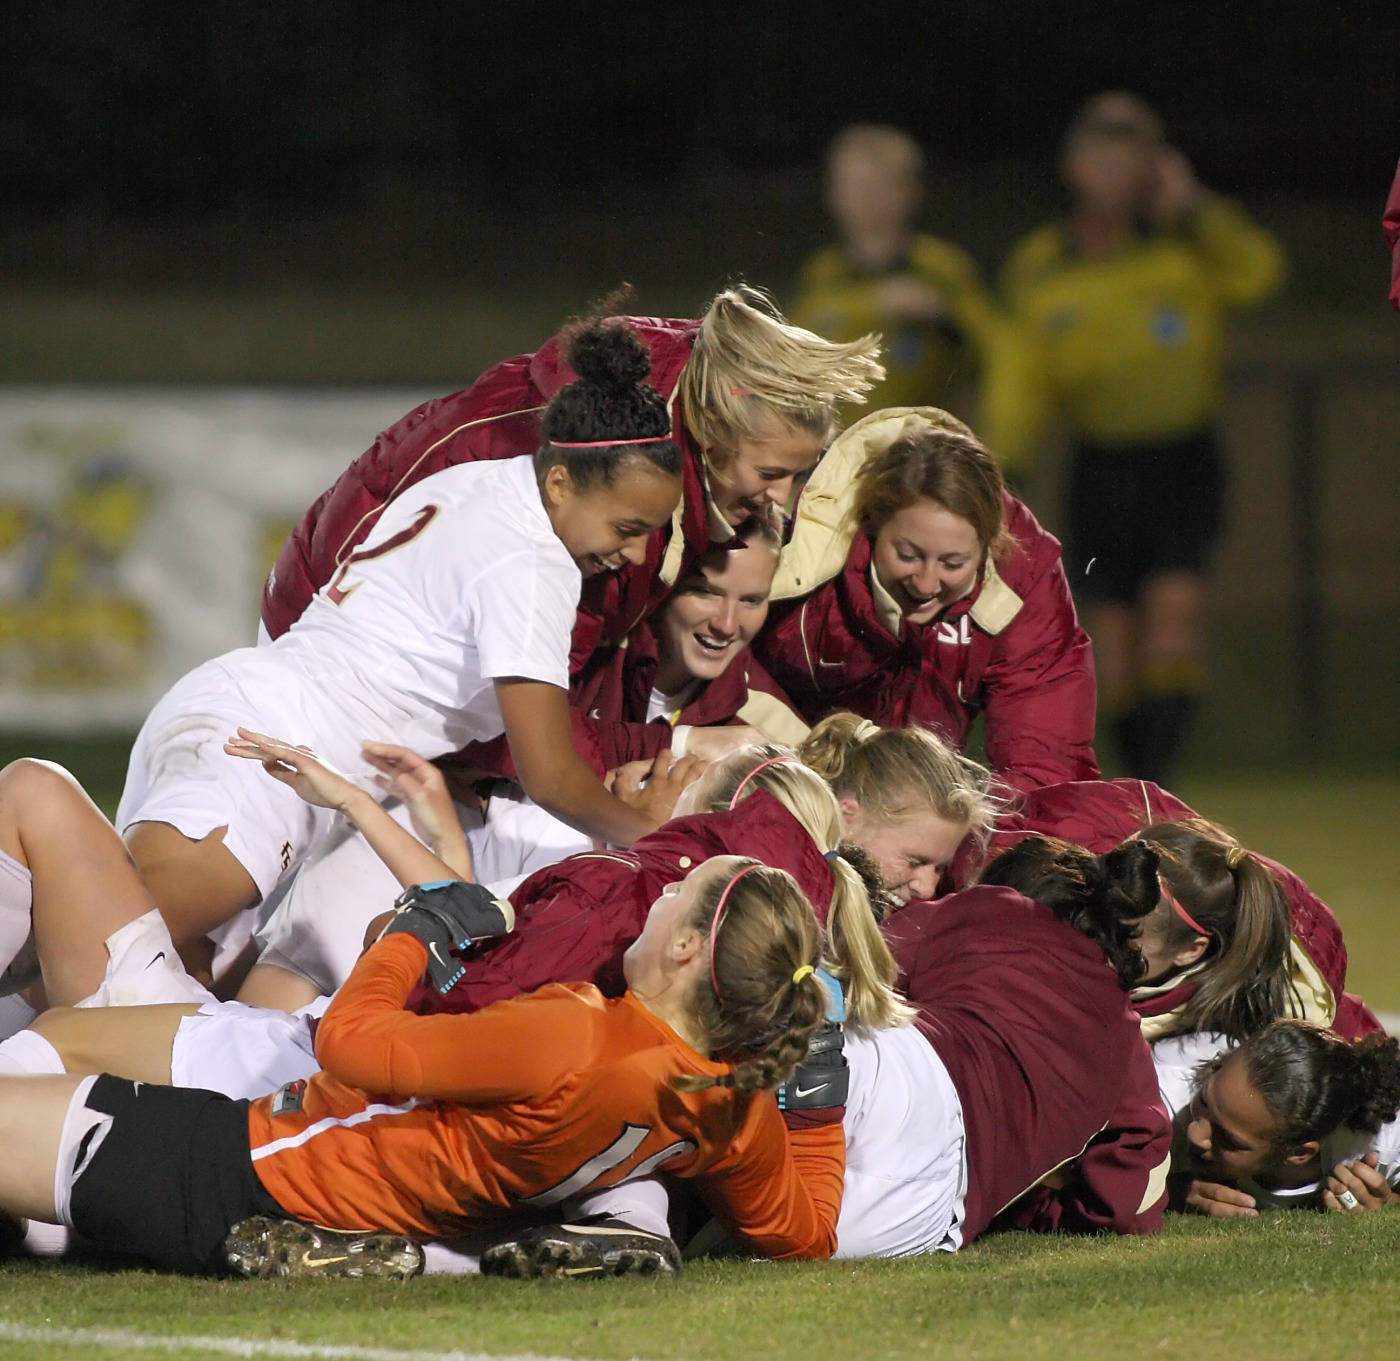 Pile on!  The Seminole soccer team celebrates Jessica Price's golden goal in a 2-1 victory over Texas A&M in the third round of the NCAA Tournament.